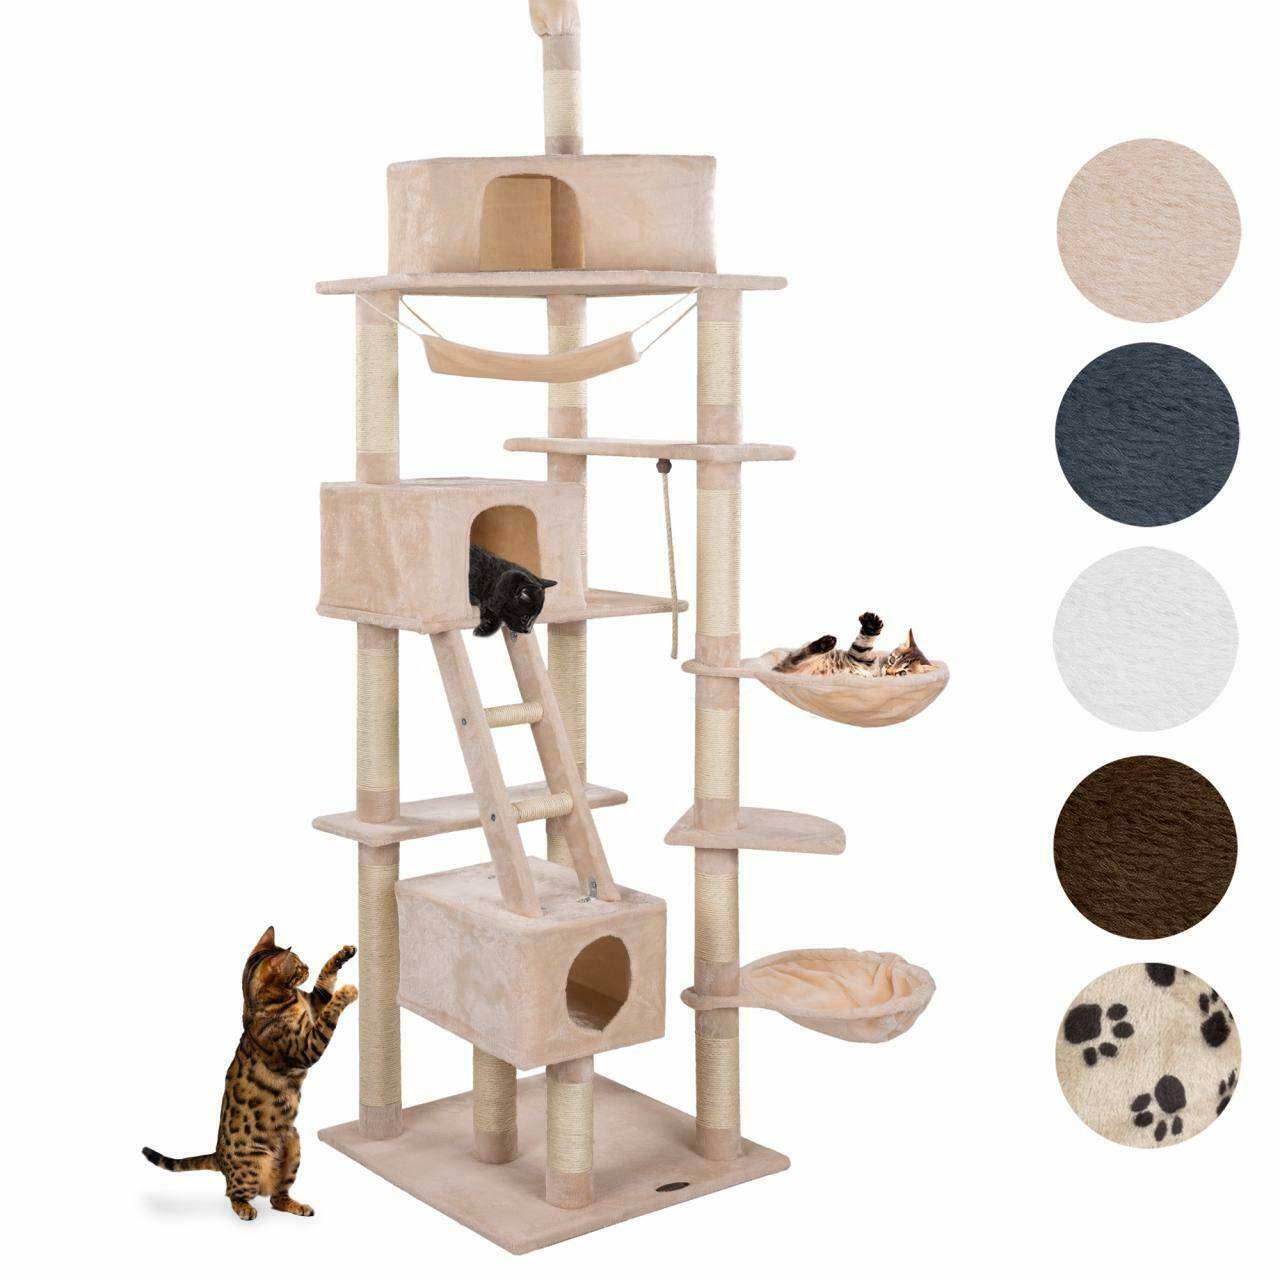 kratzbaum katzenkratzbaum deckenhoch katzenspielplatz sisal katzen kletterbaum eur 69 99. Black Bedroom Furniture Sets. Home Design Ideas